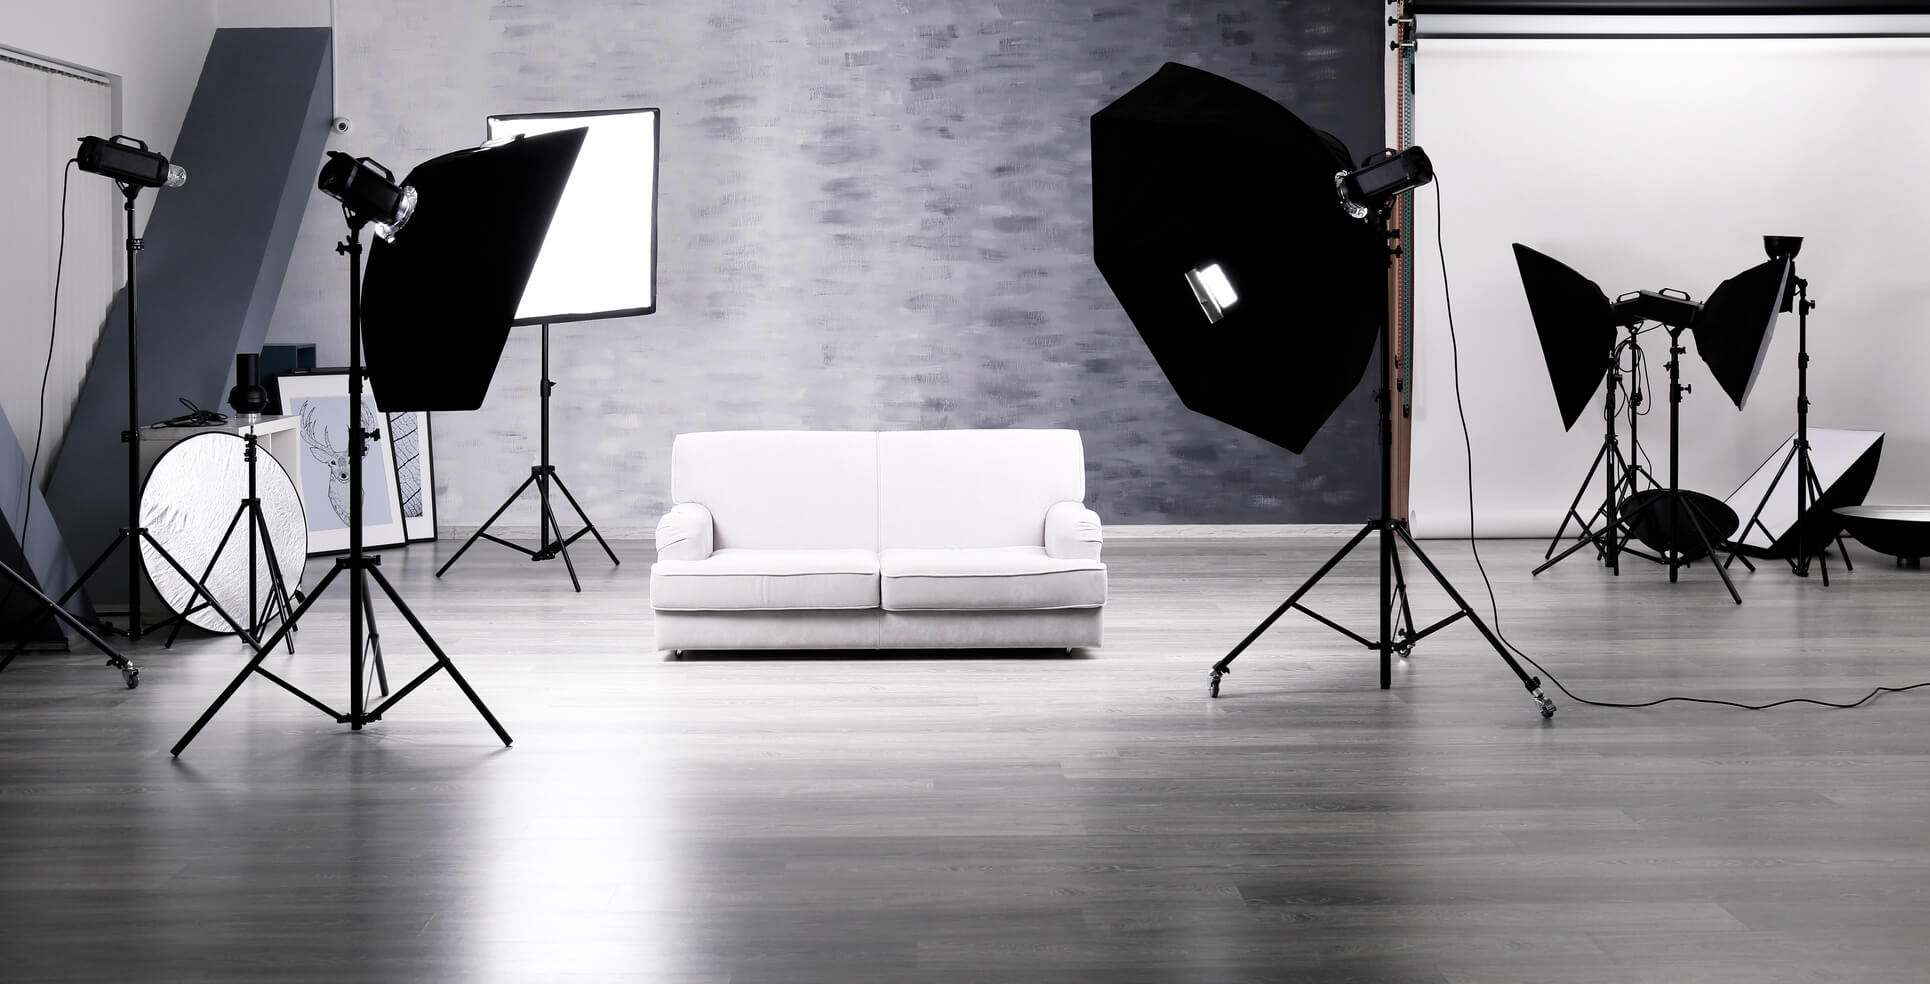 Studio Lights: How to Create the Perfect Studio Lighting?